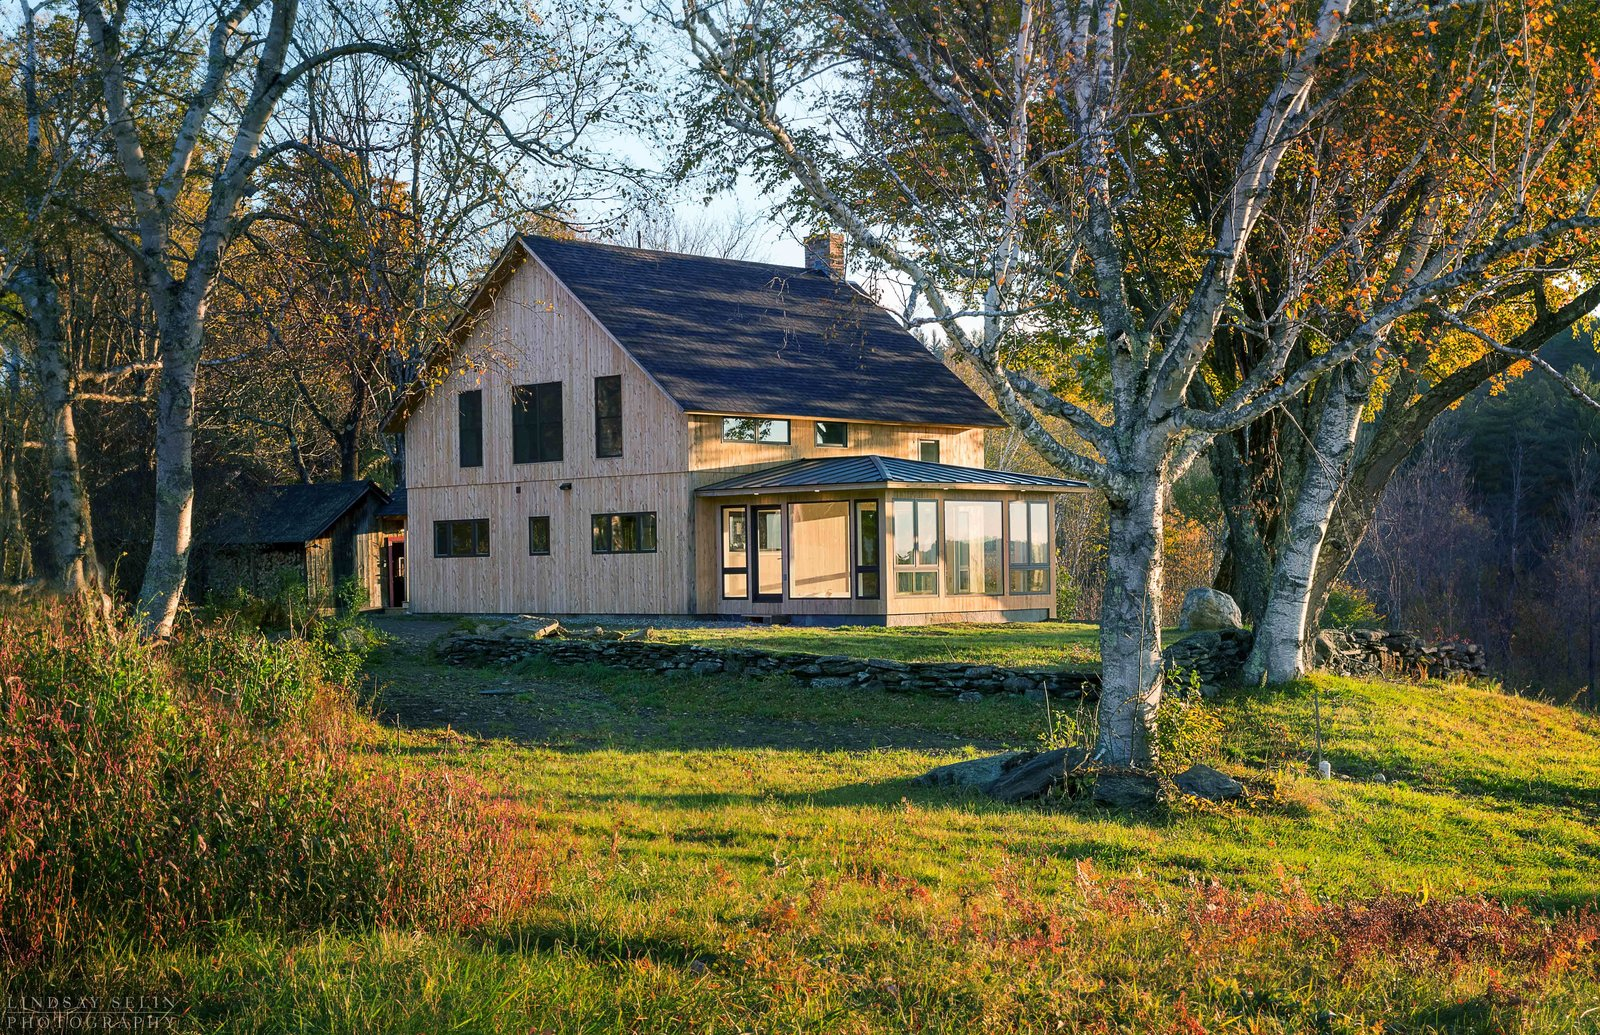 Exterior, Wood Siding Material, Shingles Roof Material, Gable RoofLine, and House Building Type New exterior  Photo 1 of 6 in Top 5 Converted Barns and Farmhouses That Celebrate Their Rural Roots from Vermont Barn to High Performance Home